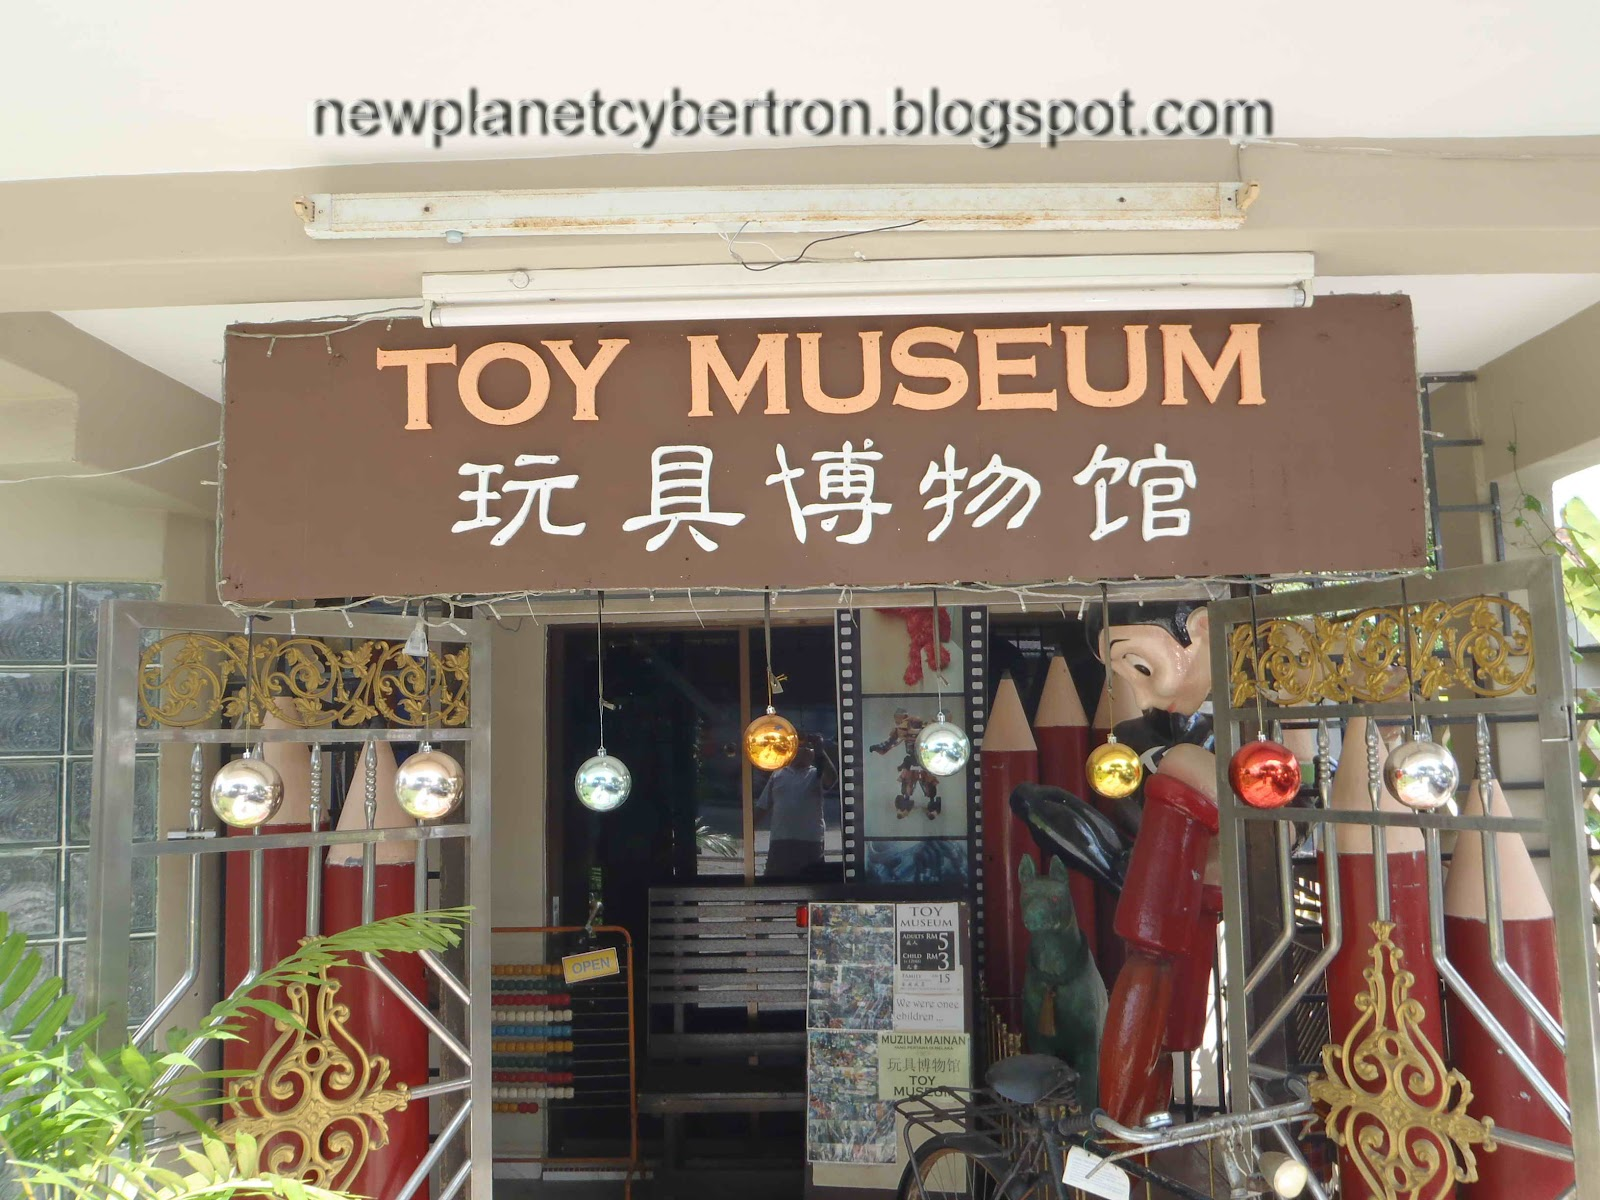 melaka toy museum The shore toy museum has more than 10,000 exhibition toys specially imported from japan, thailand and many others countries the shore melaka toy museum.